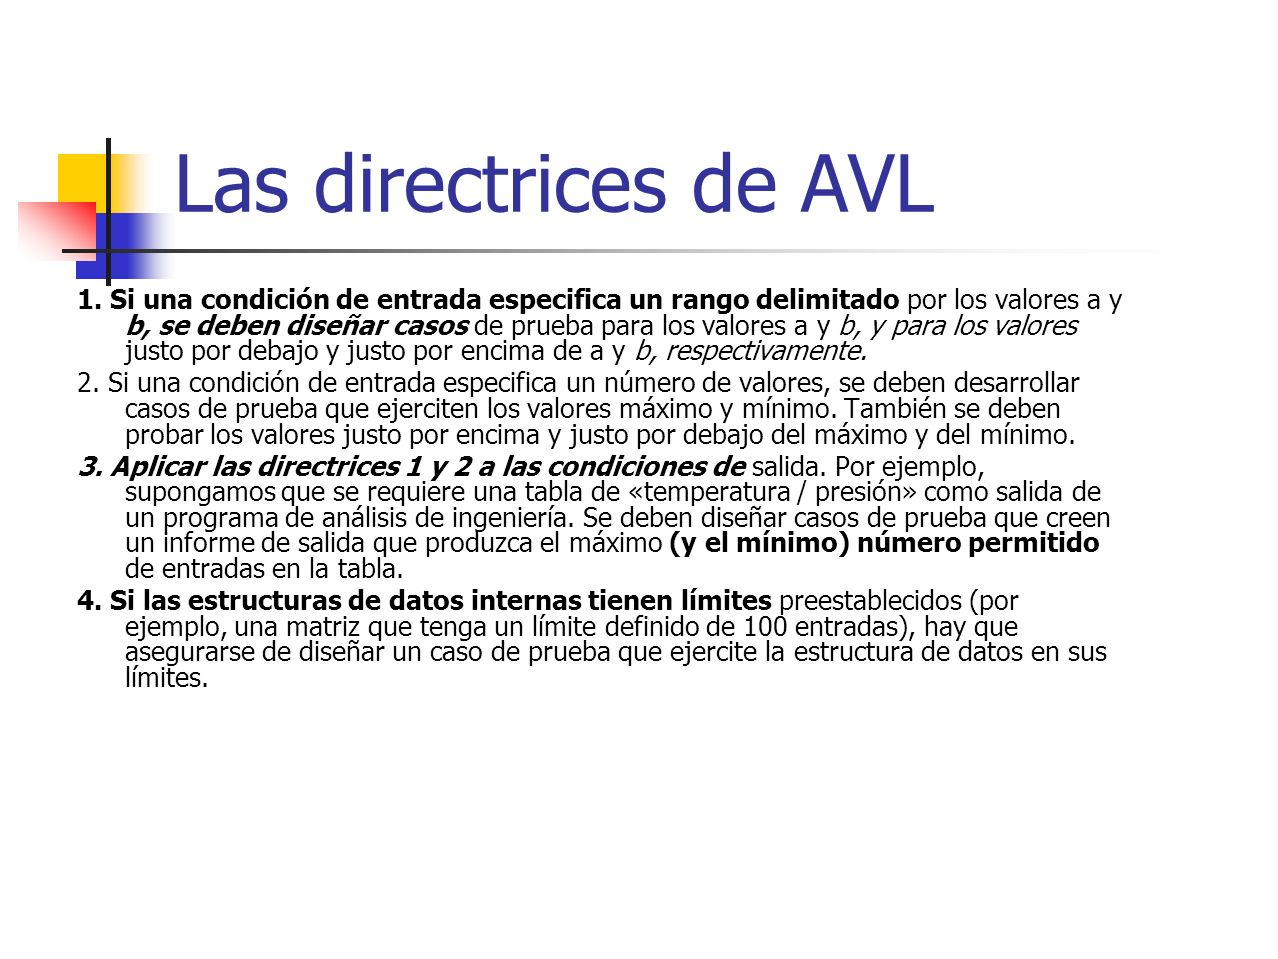 Las directrices de AVL